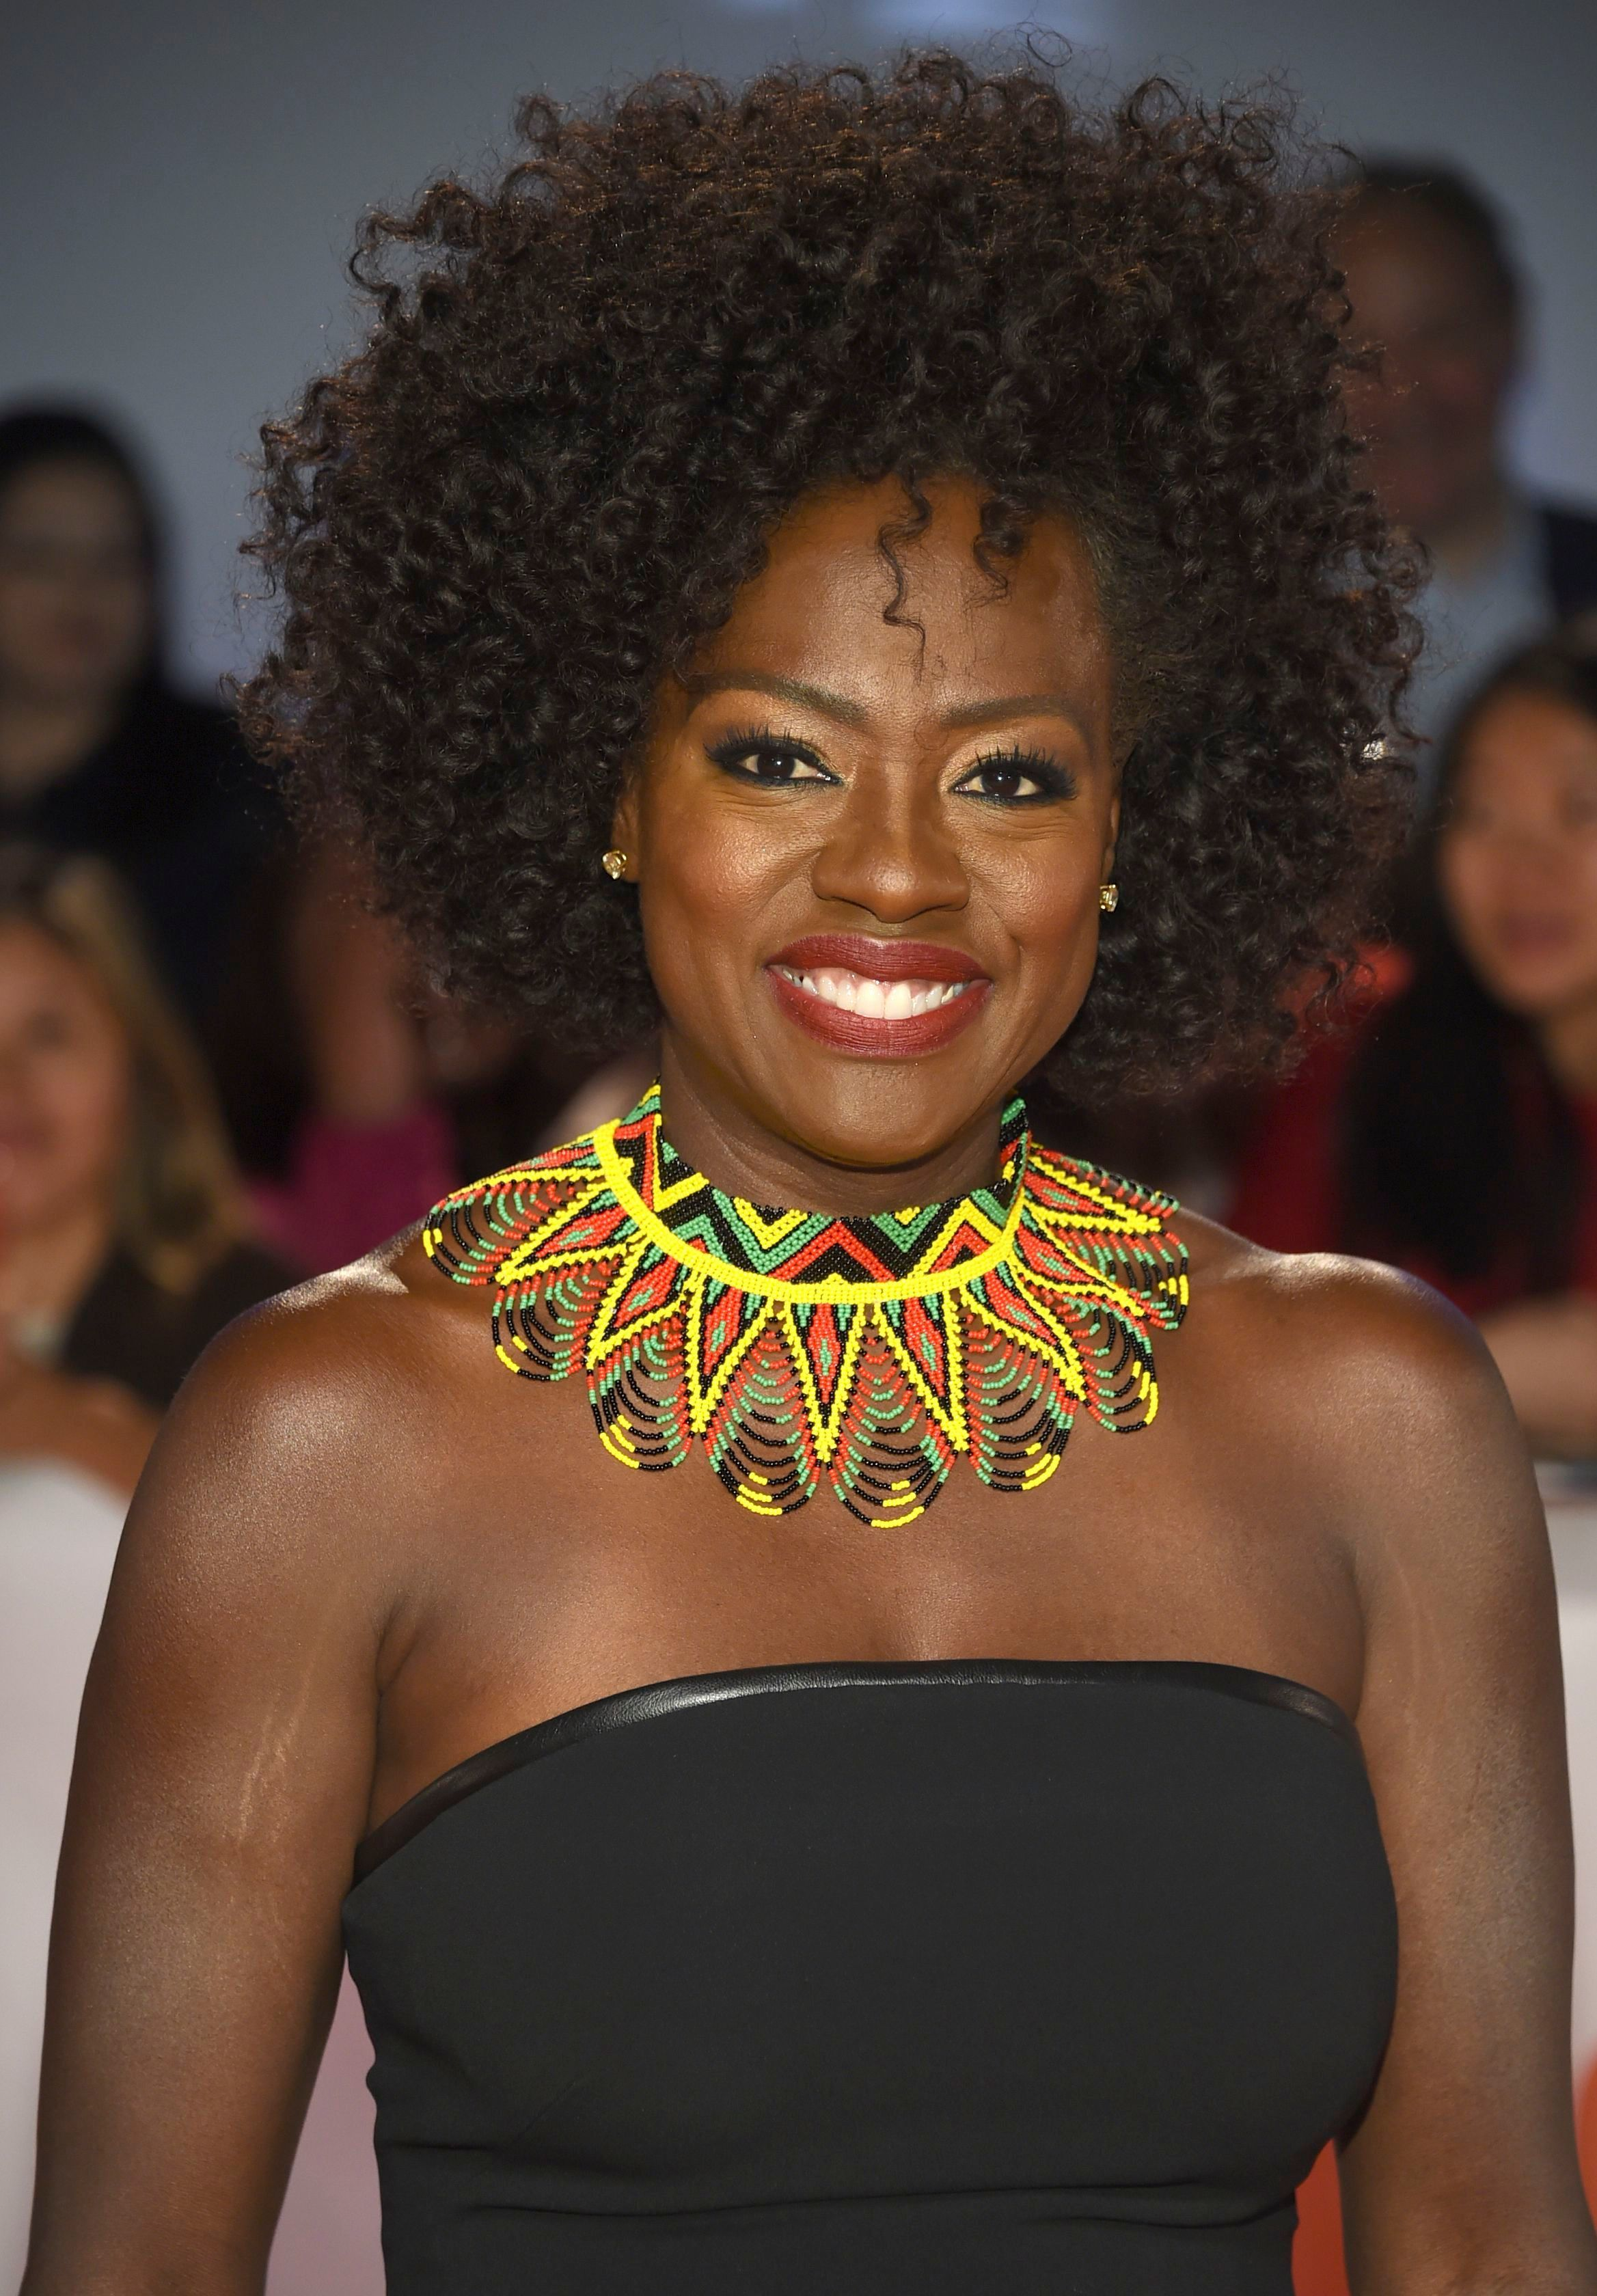 Viola Davis and more entertainers who got their start later in life